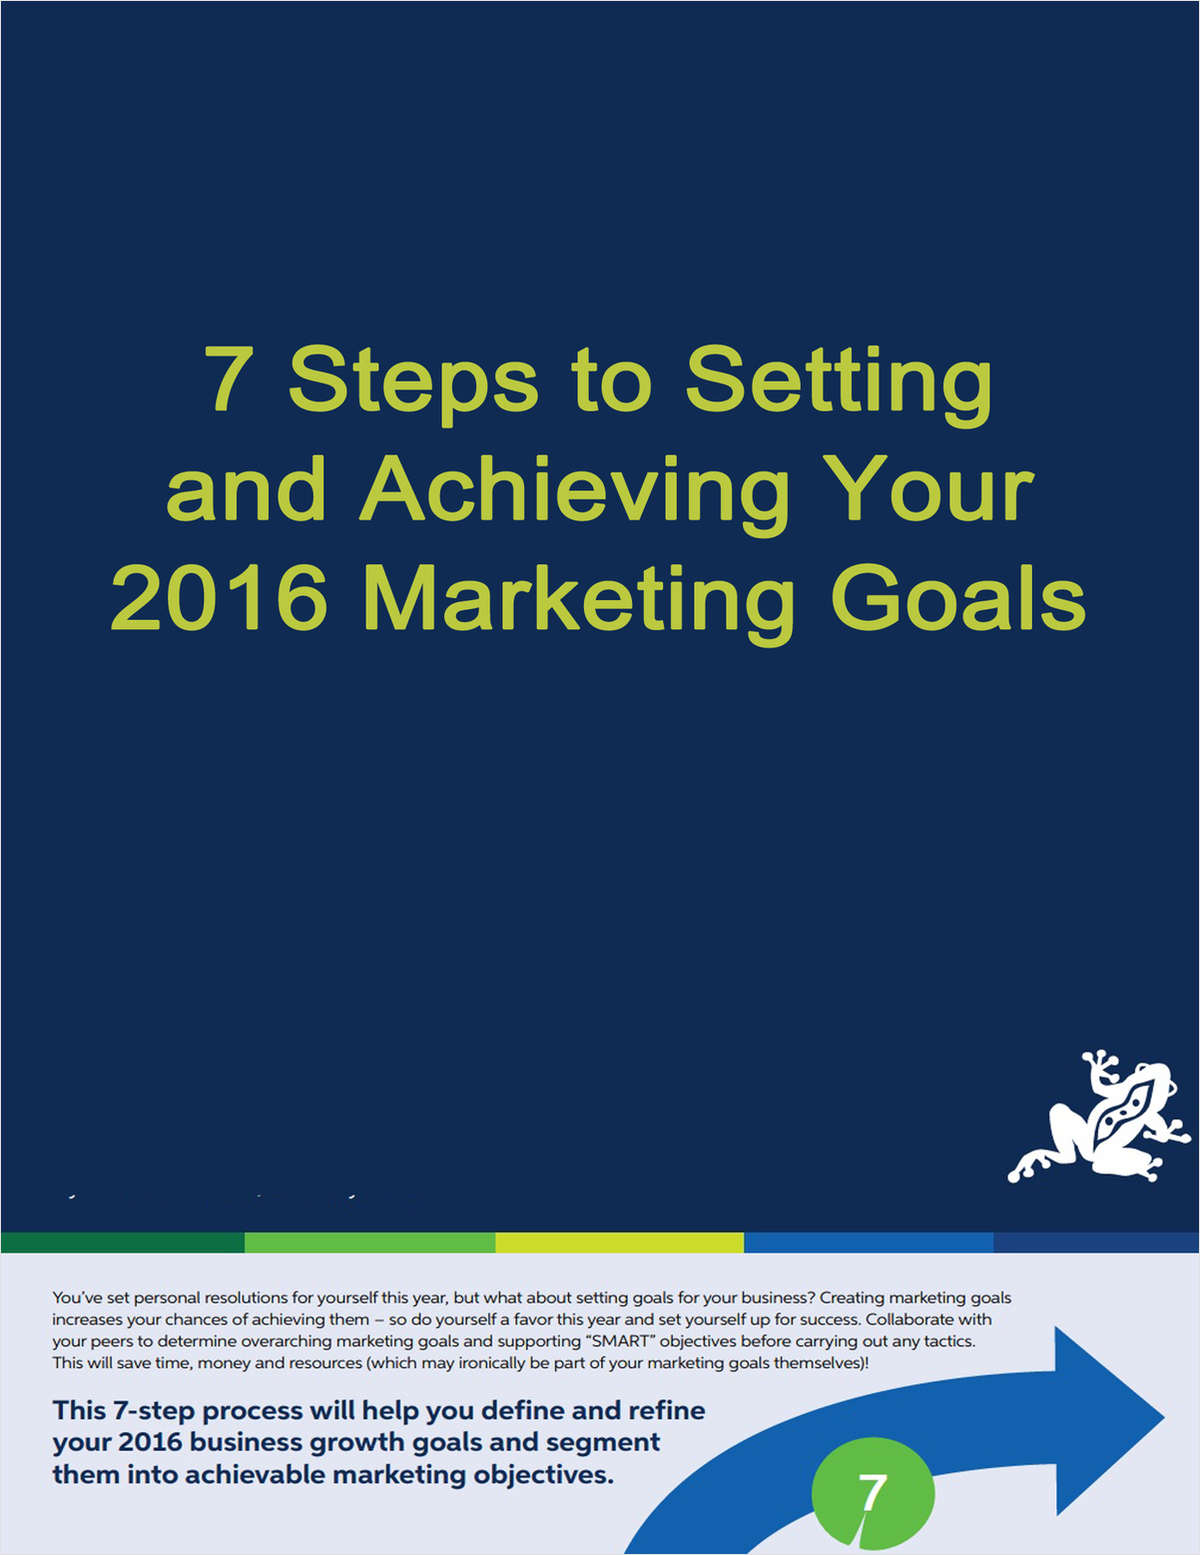 7 Steps to Setting and Achieving Your Marketing Goals